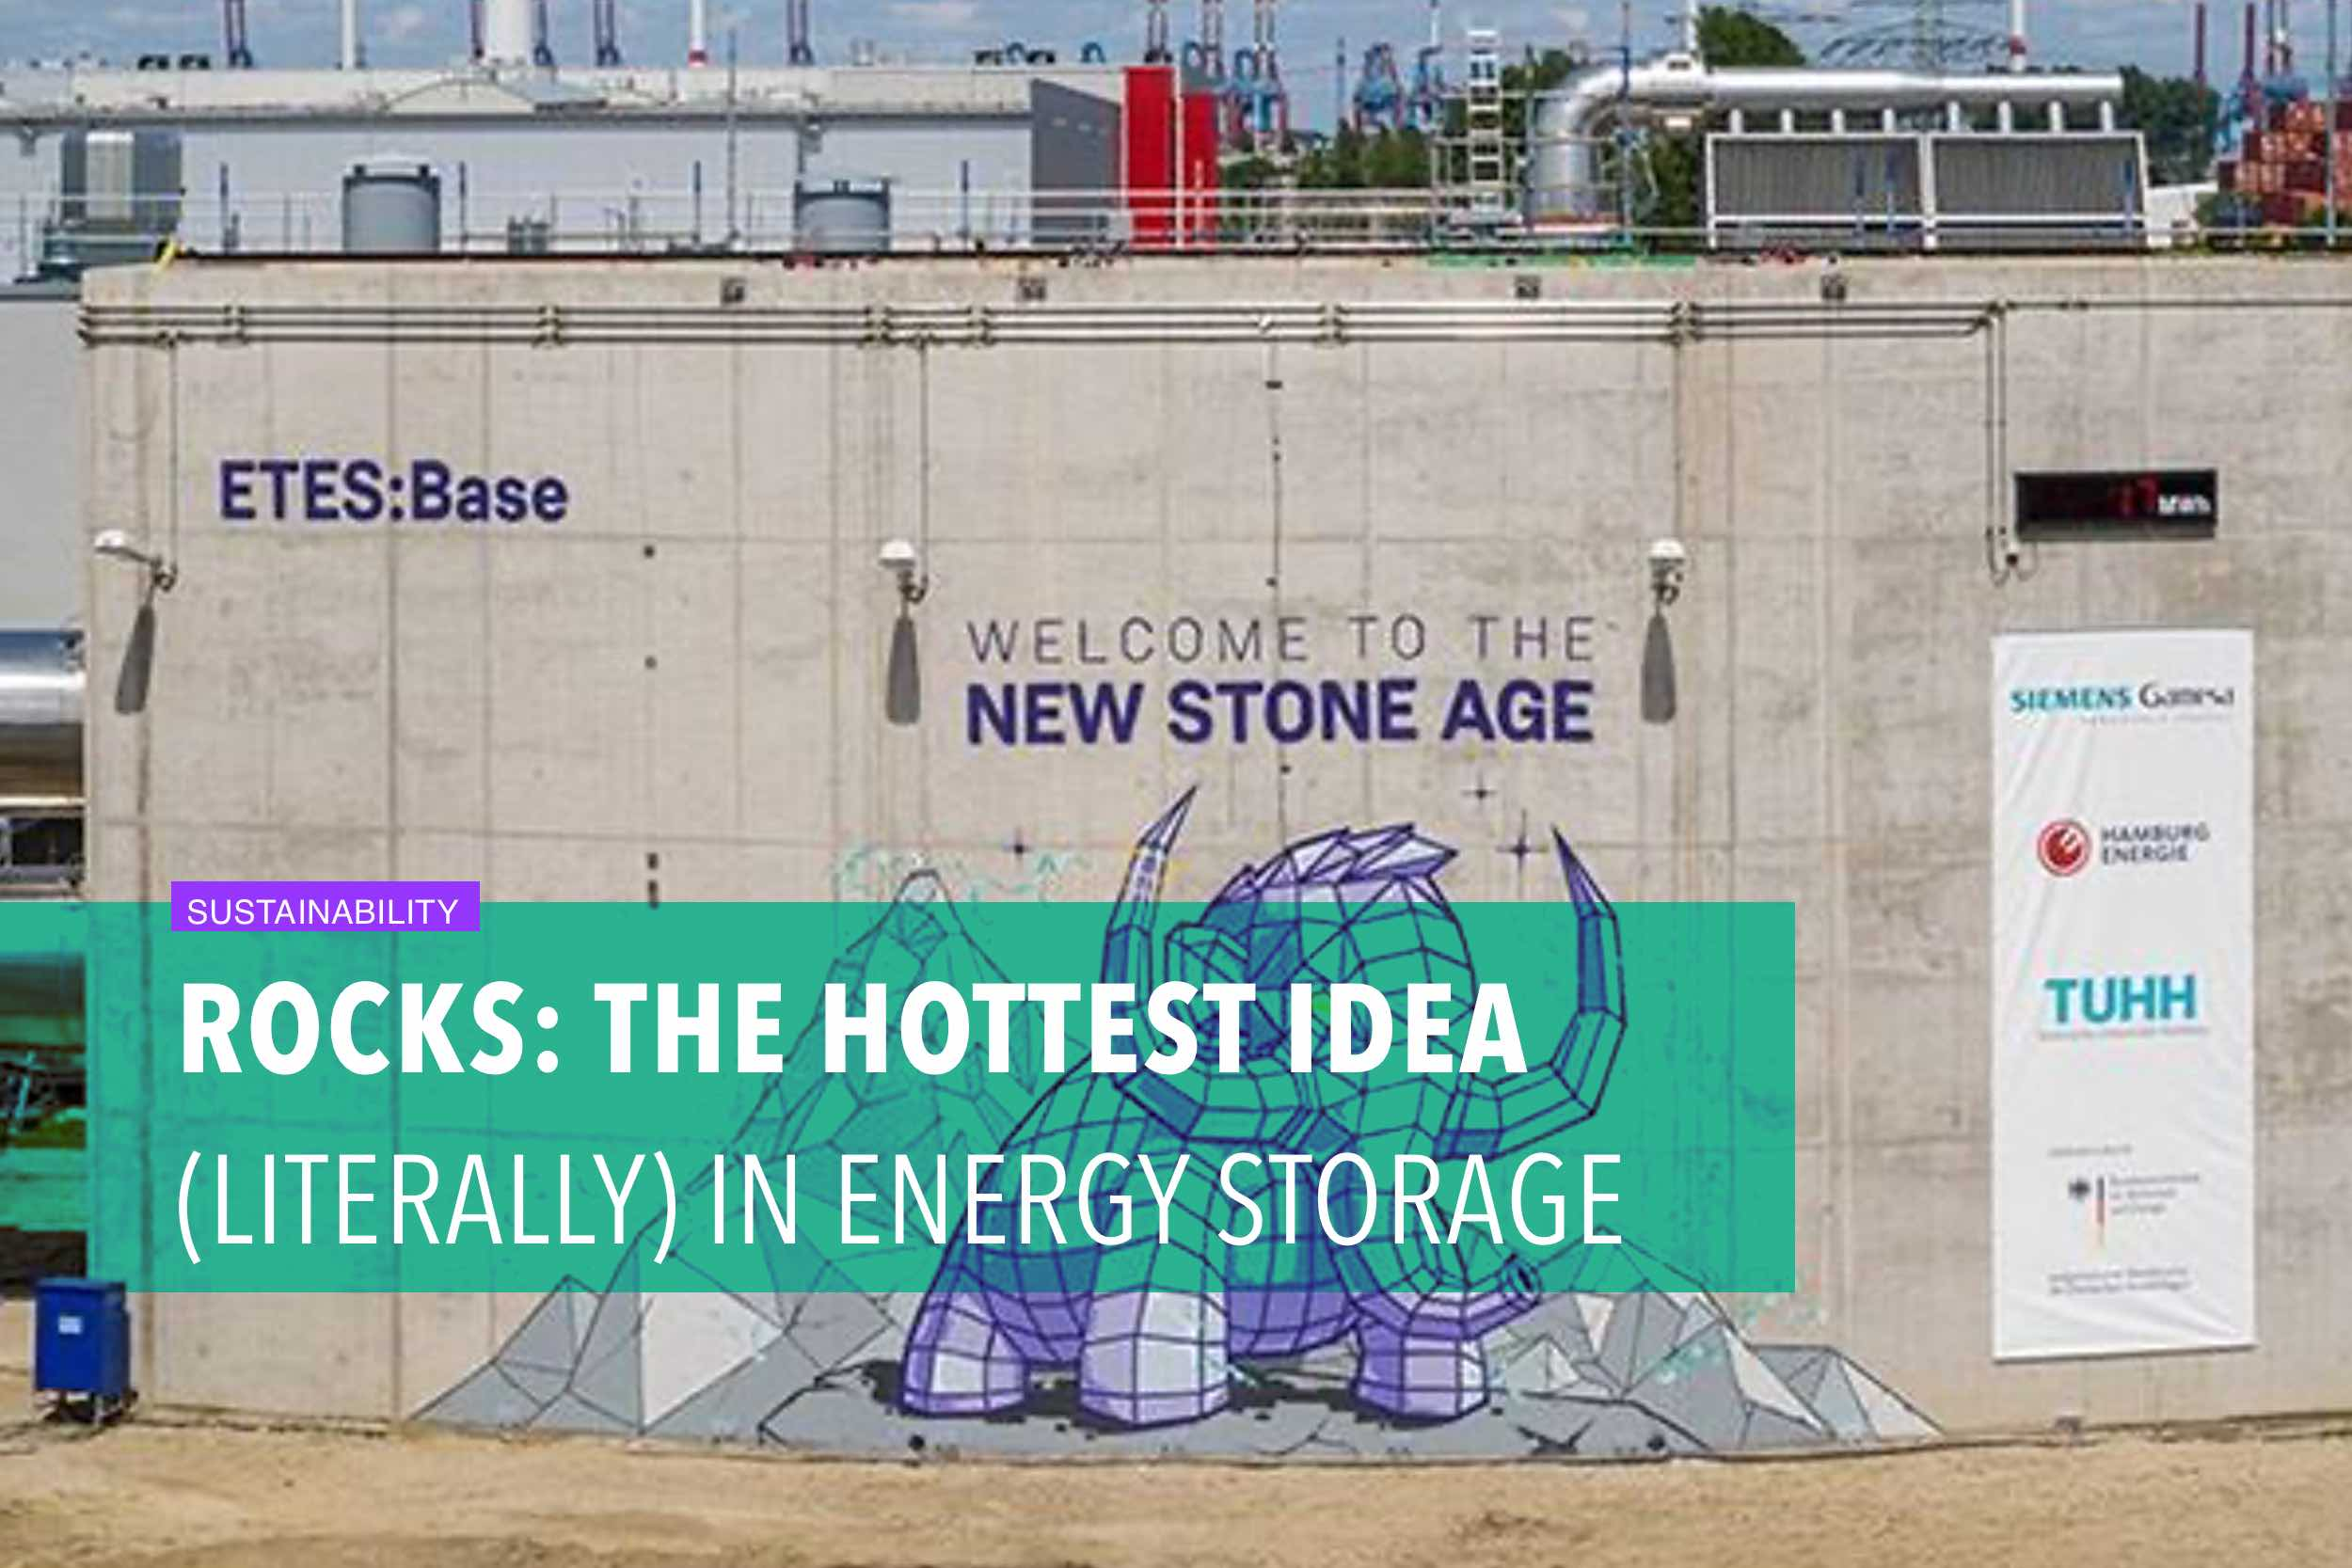 Rocks: the hottest idea (literally) in energy storage